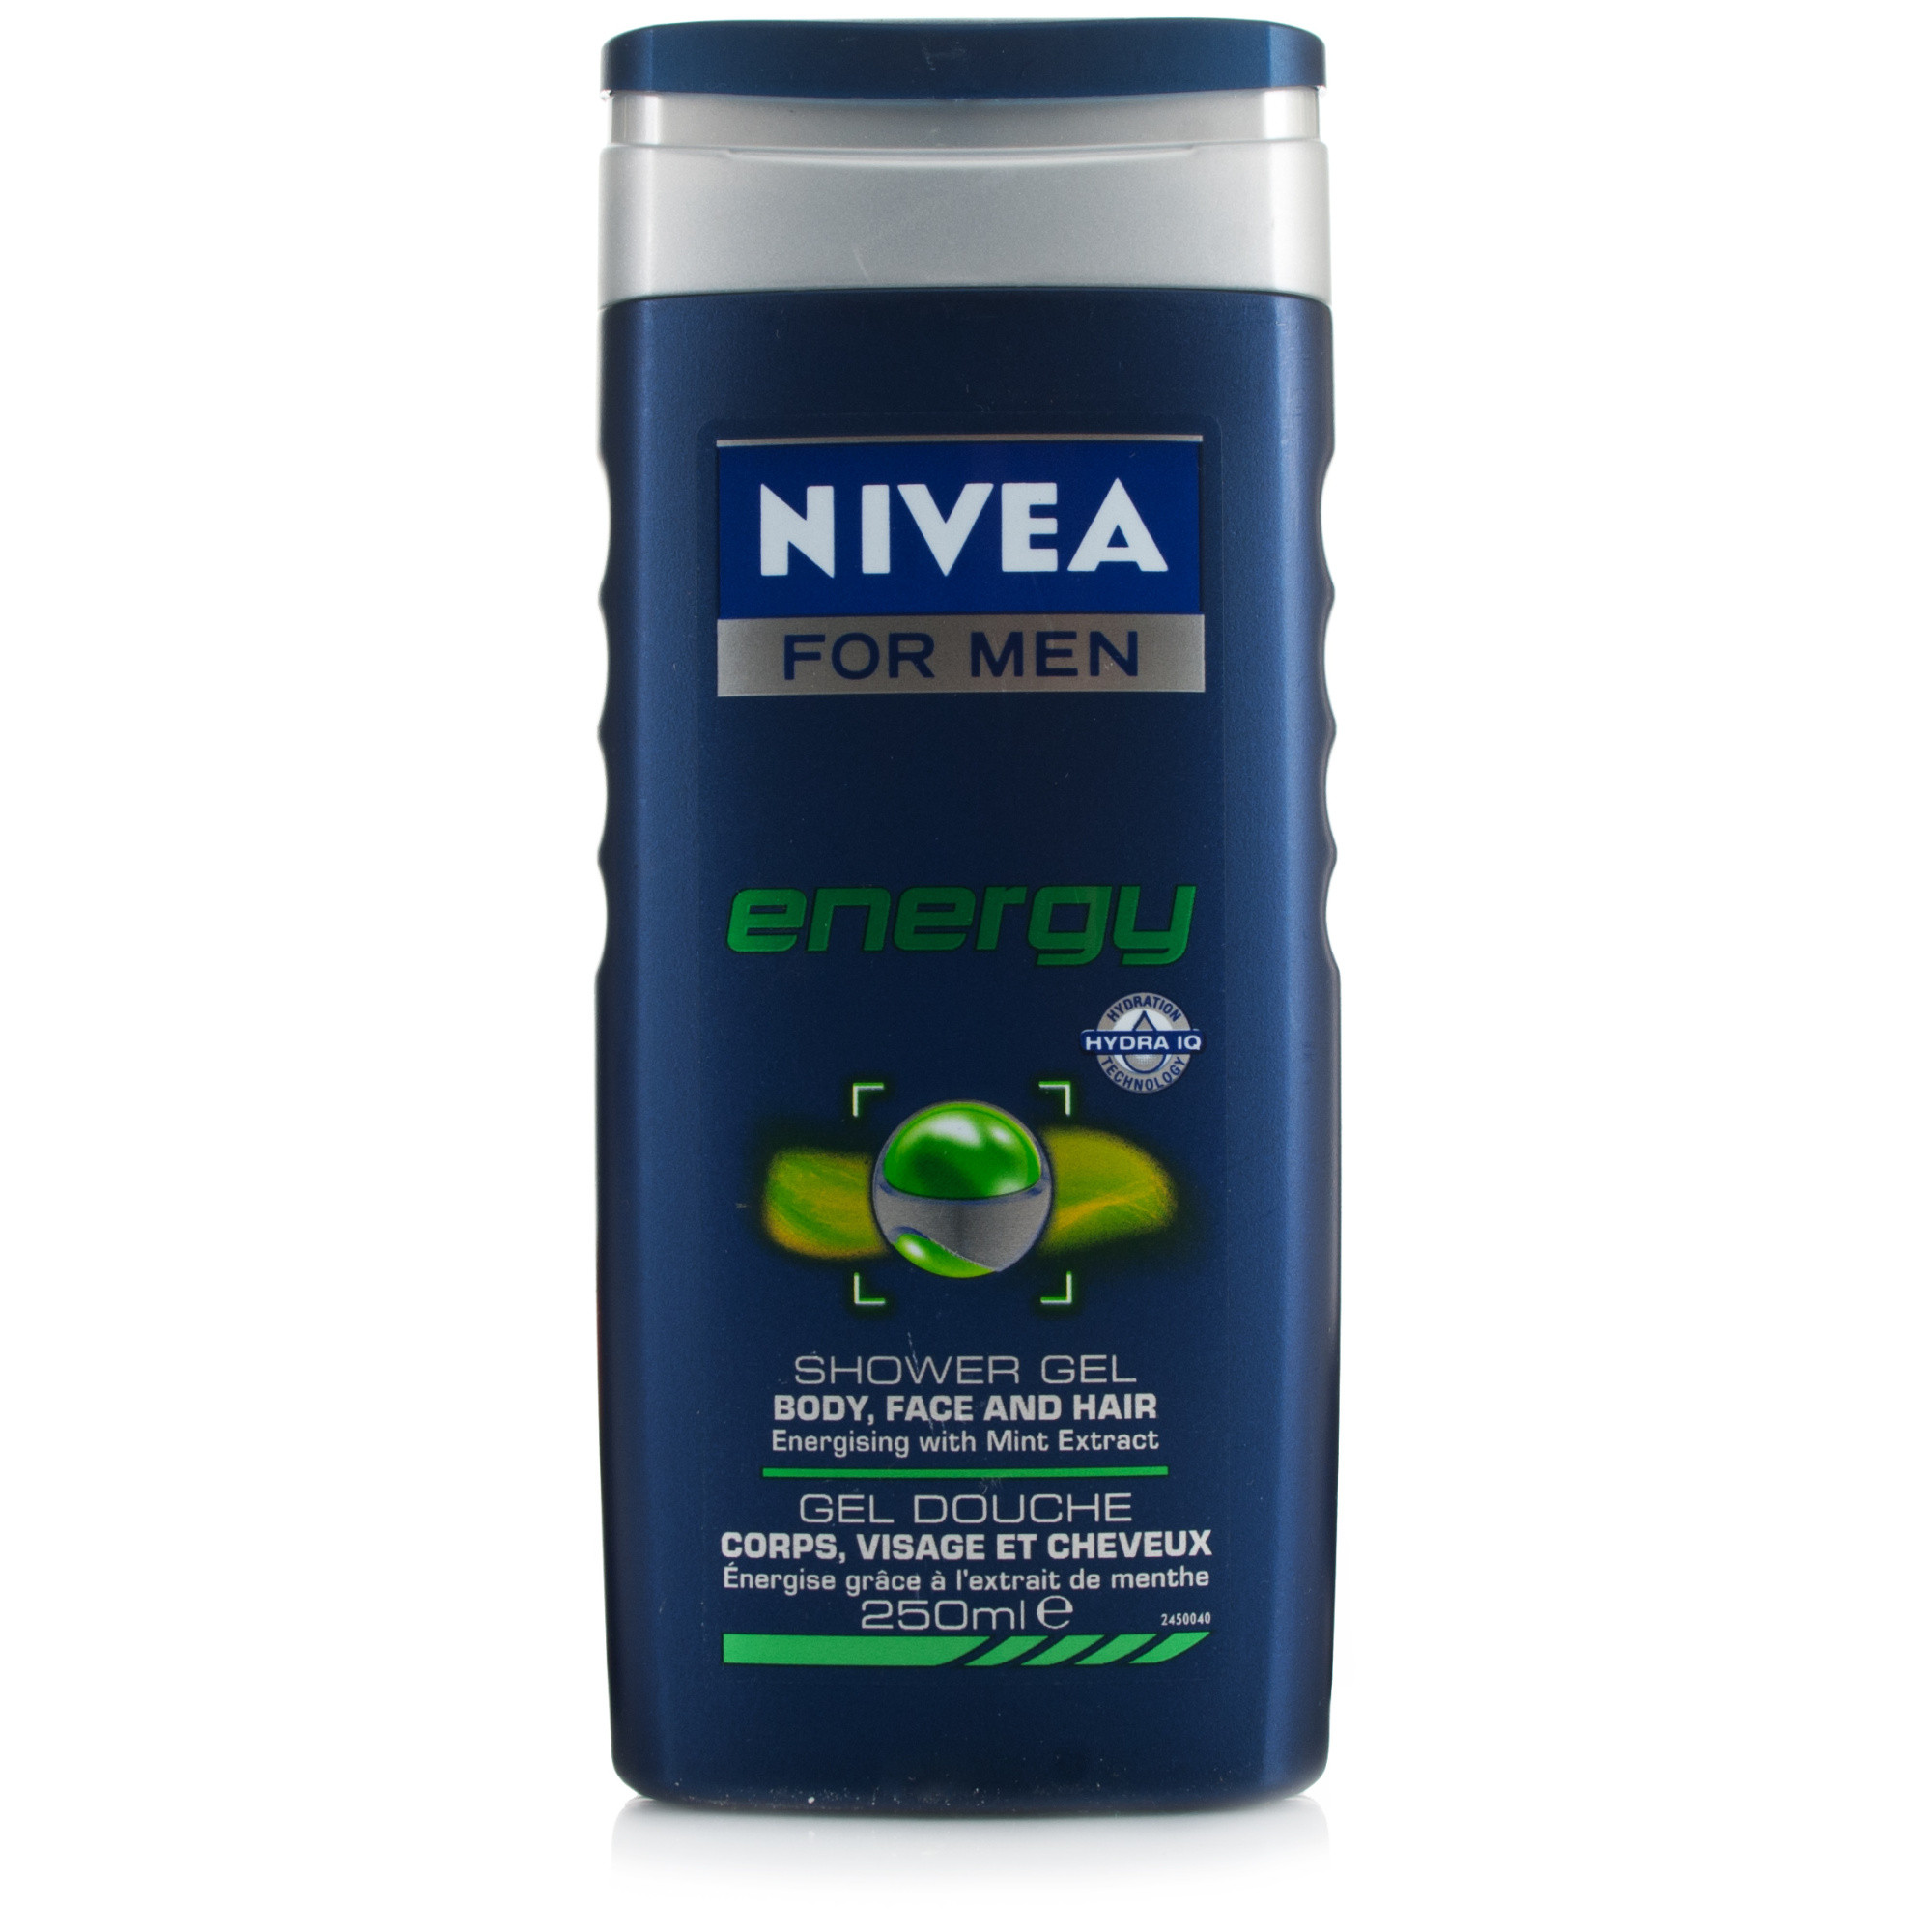 Nivea Energy Shower Gel for Men Image